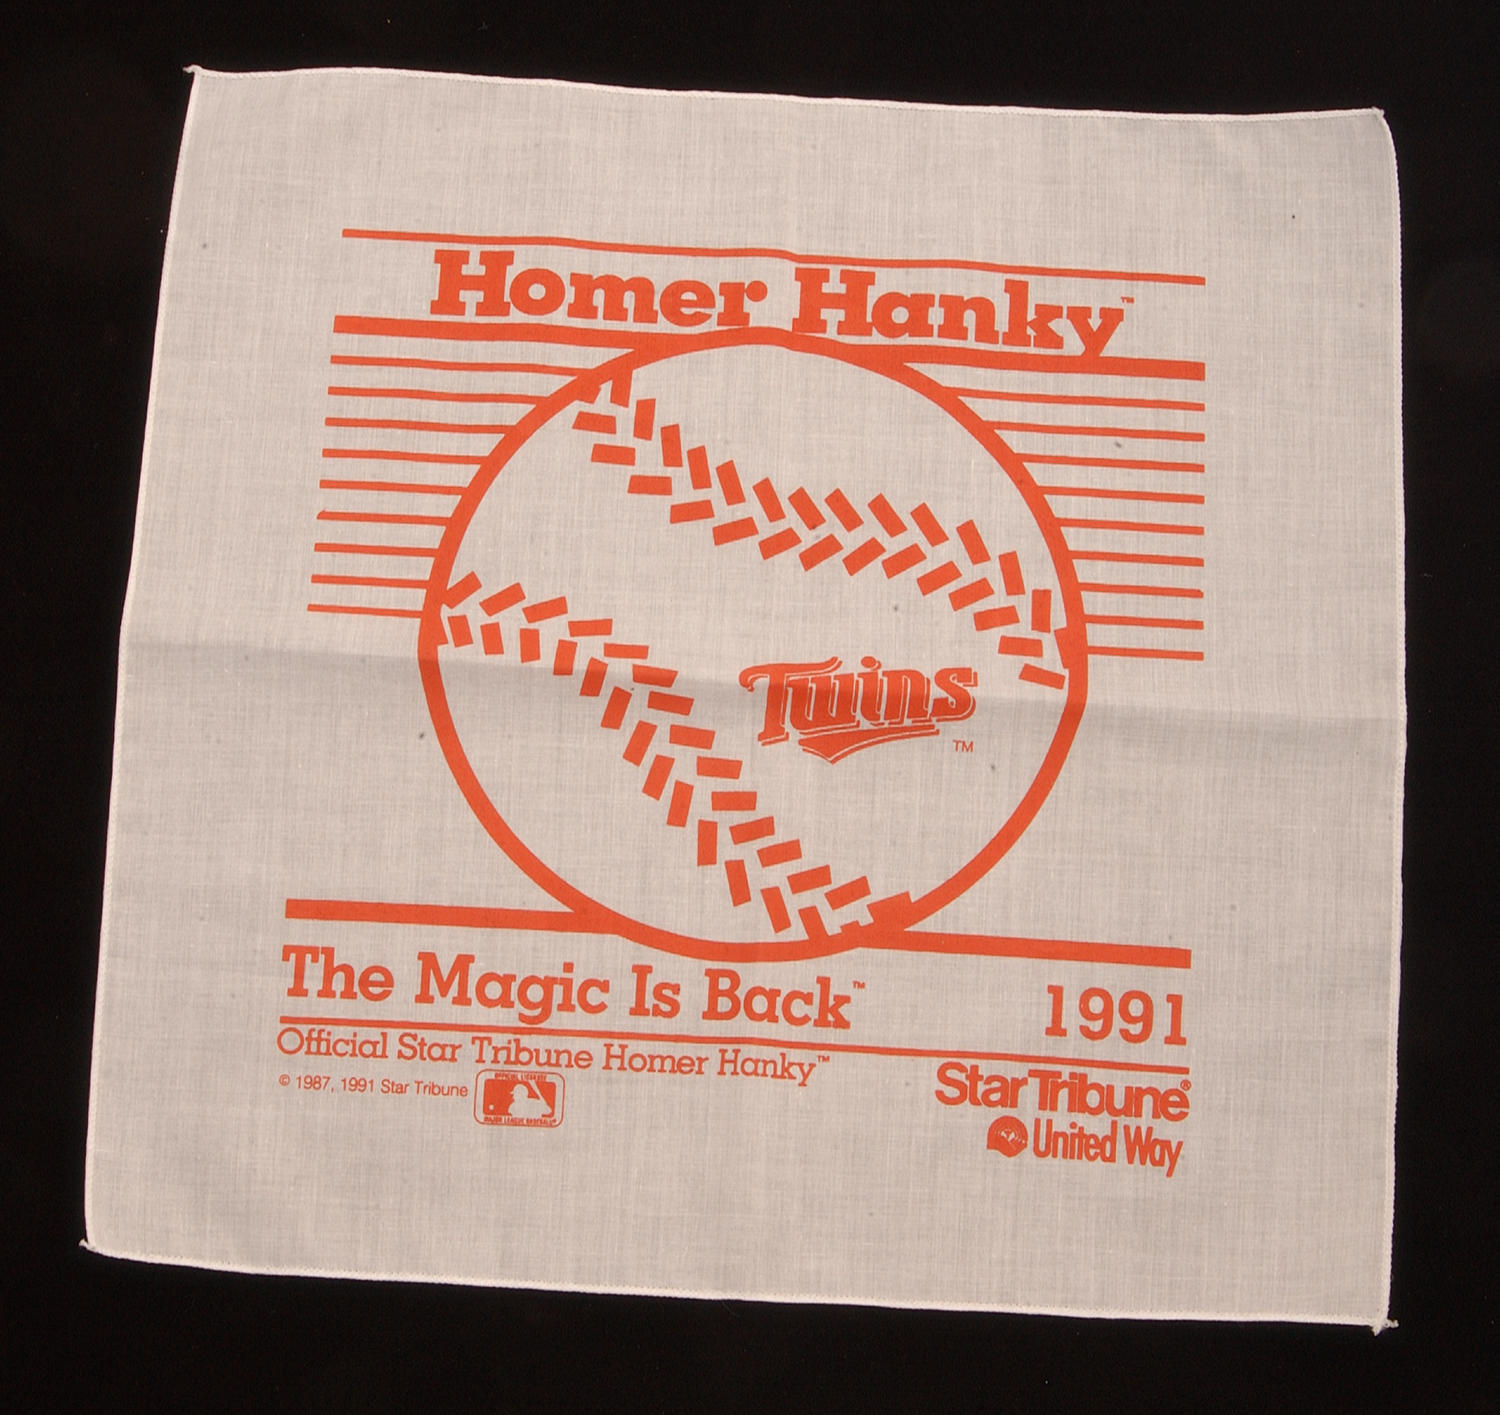 "A Minnesota Twins 'Homer Hanky', handed out by the Minneapolis Star-Tribune during the ALCS and the 1991 World Series. <a href=""http://collection.baseballhall.org/islandora/object/islandora%3A262585"">PASTIME</a> (Milo Stewart Jr. / National Baseball Hall of Fame)"